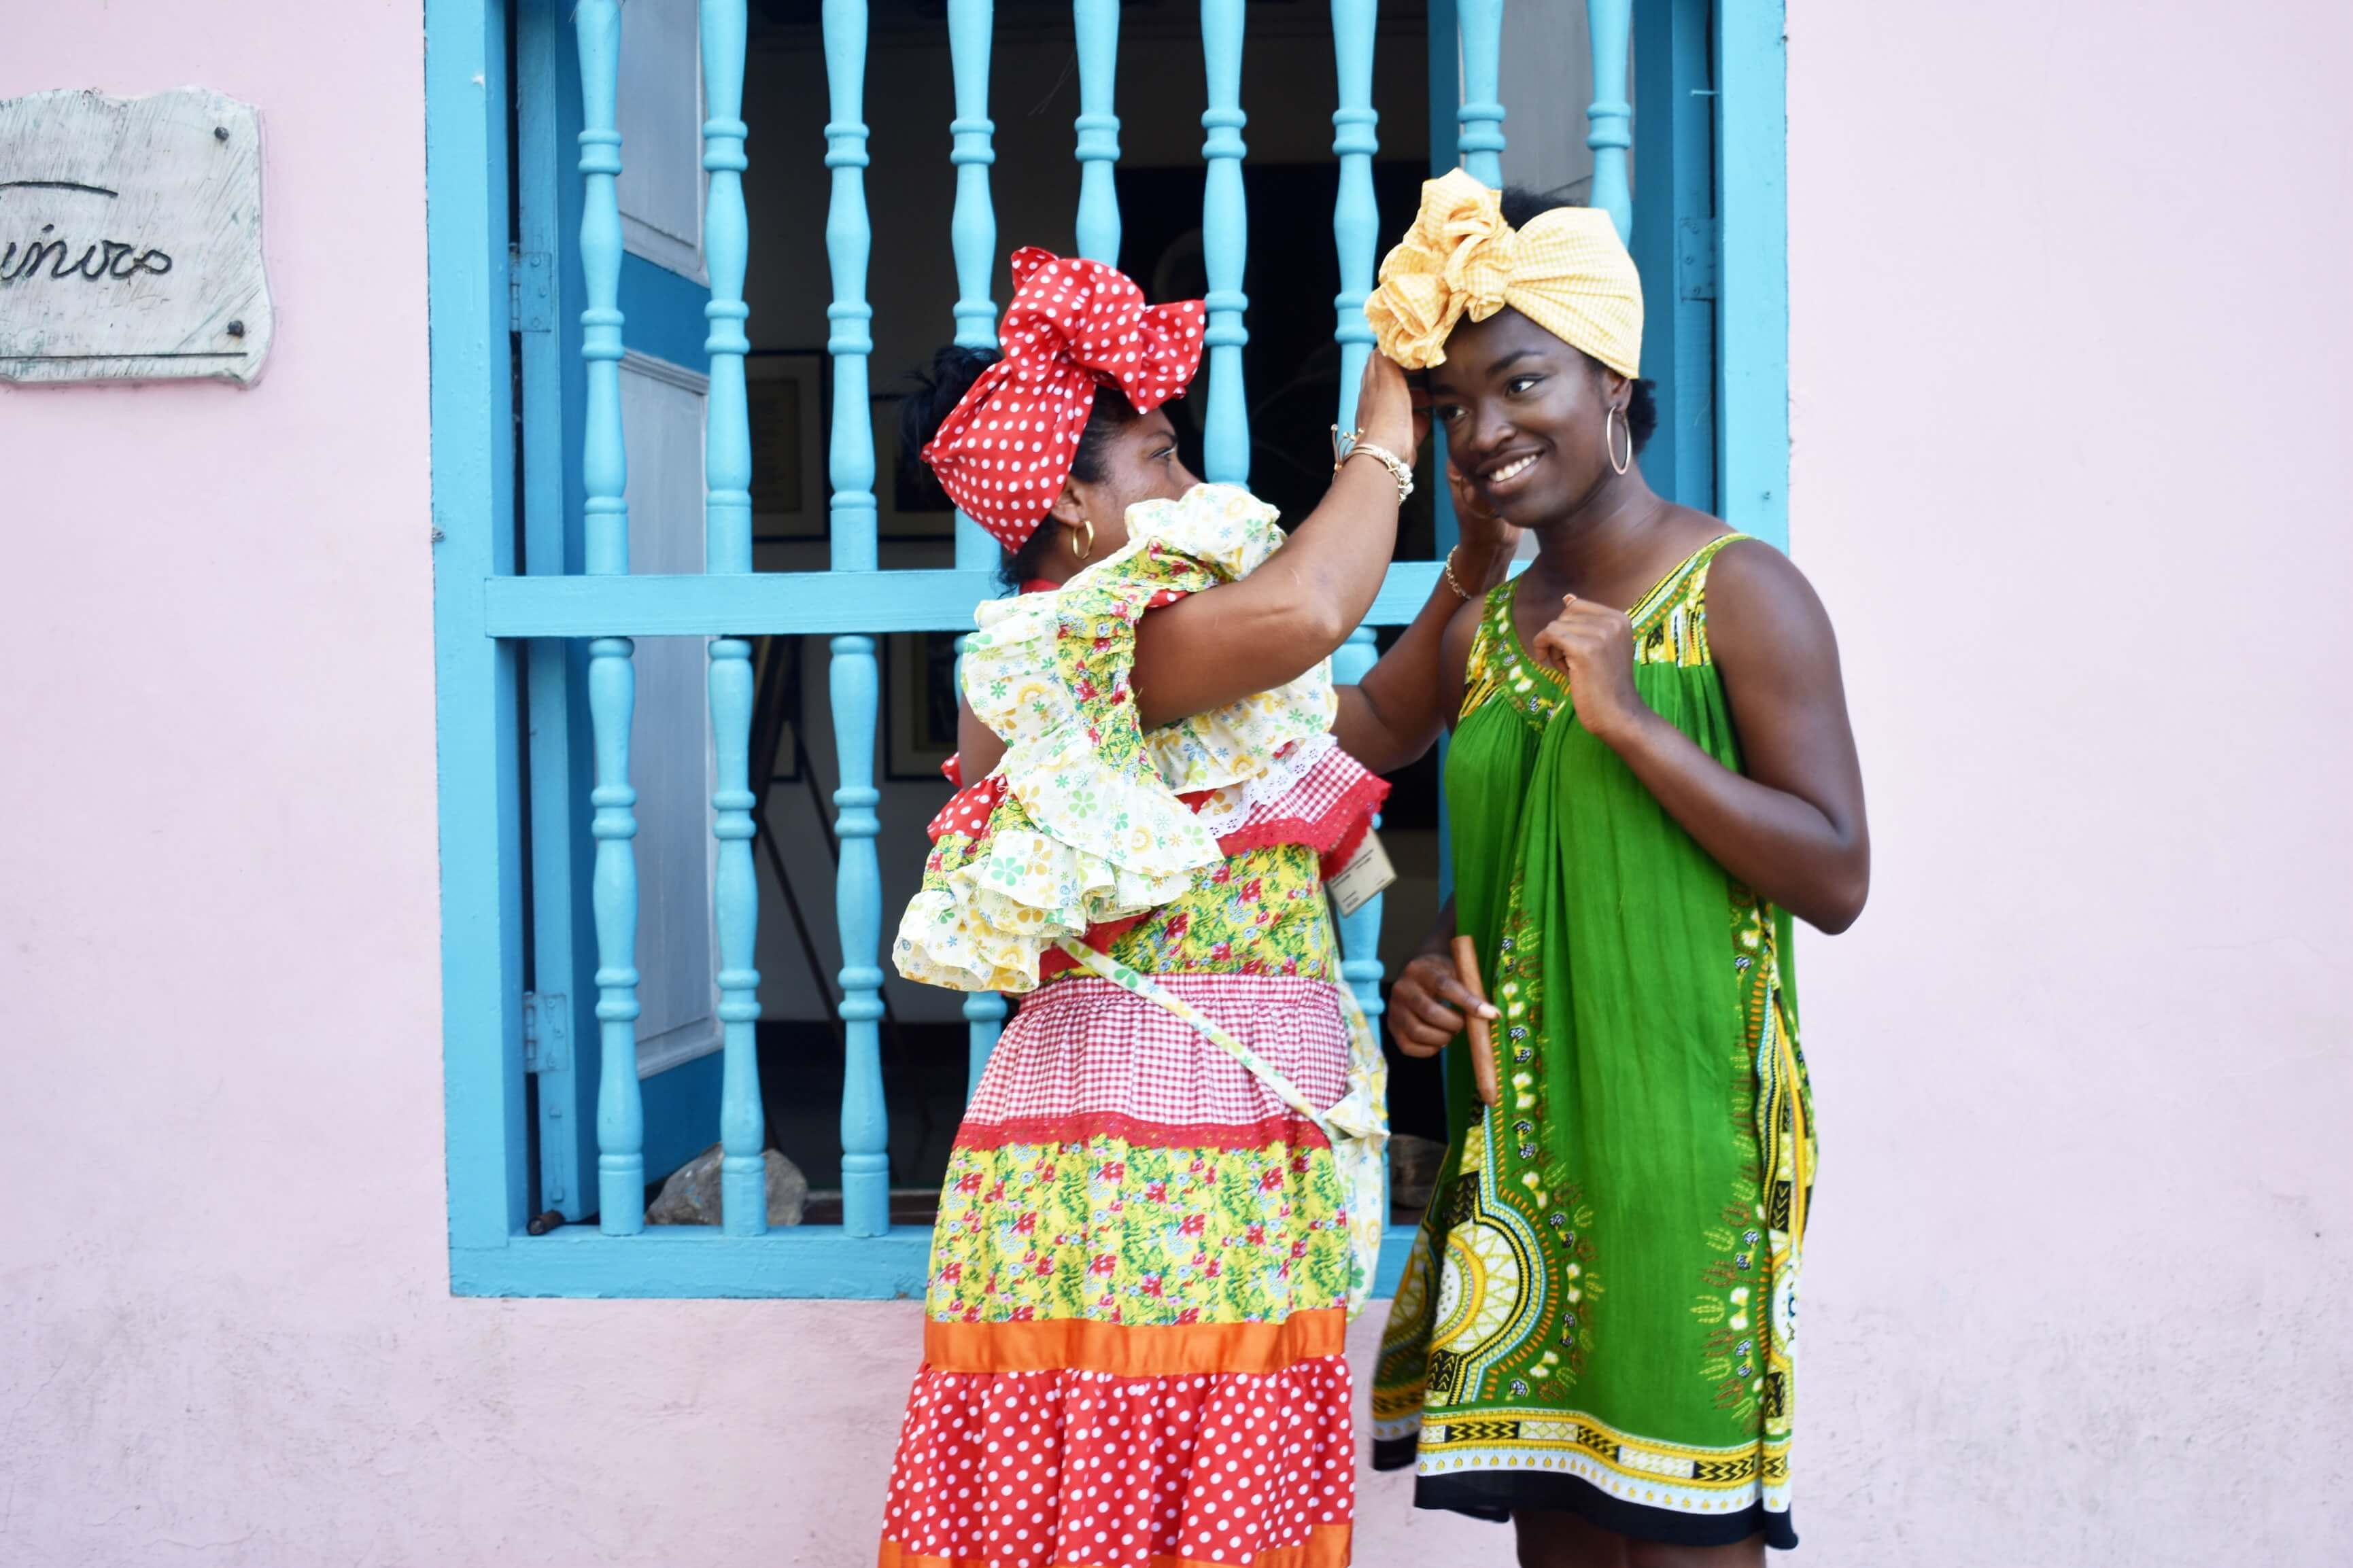 A colorfully-dressed woman puts on a scarf for me in Havana